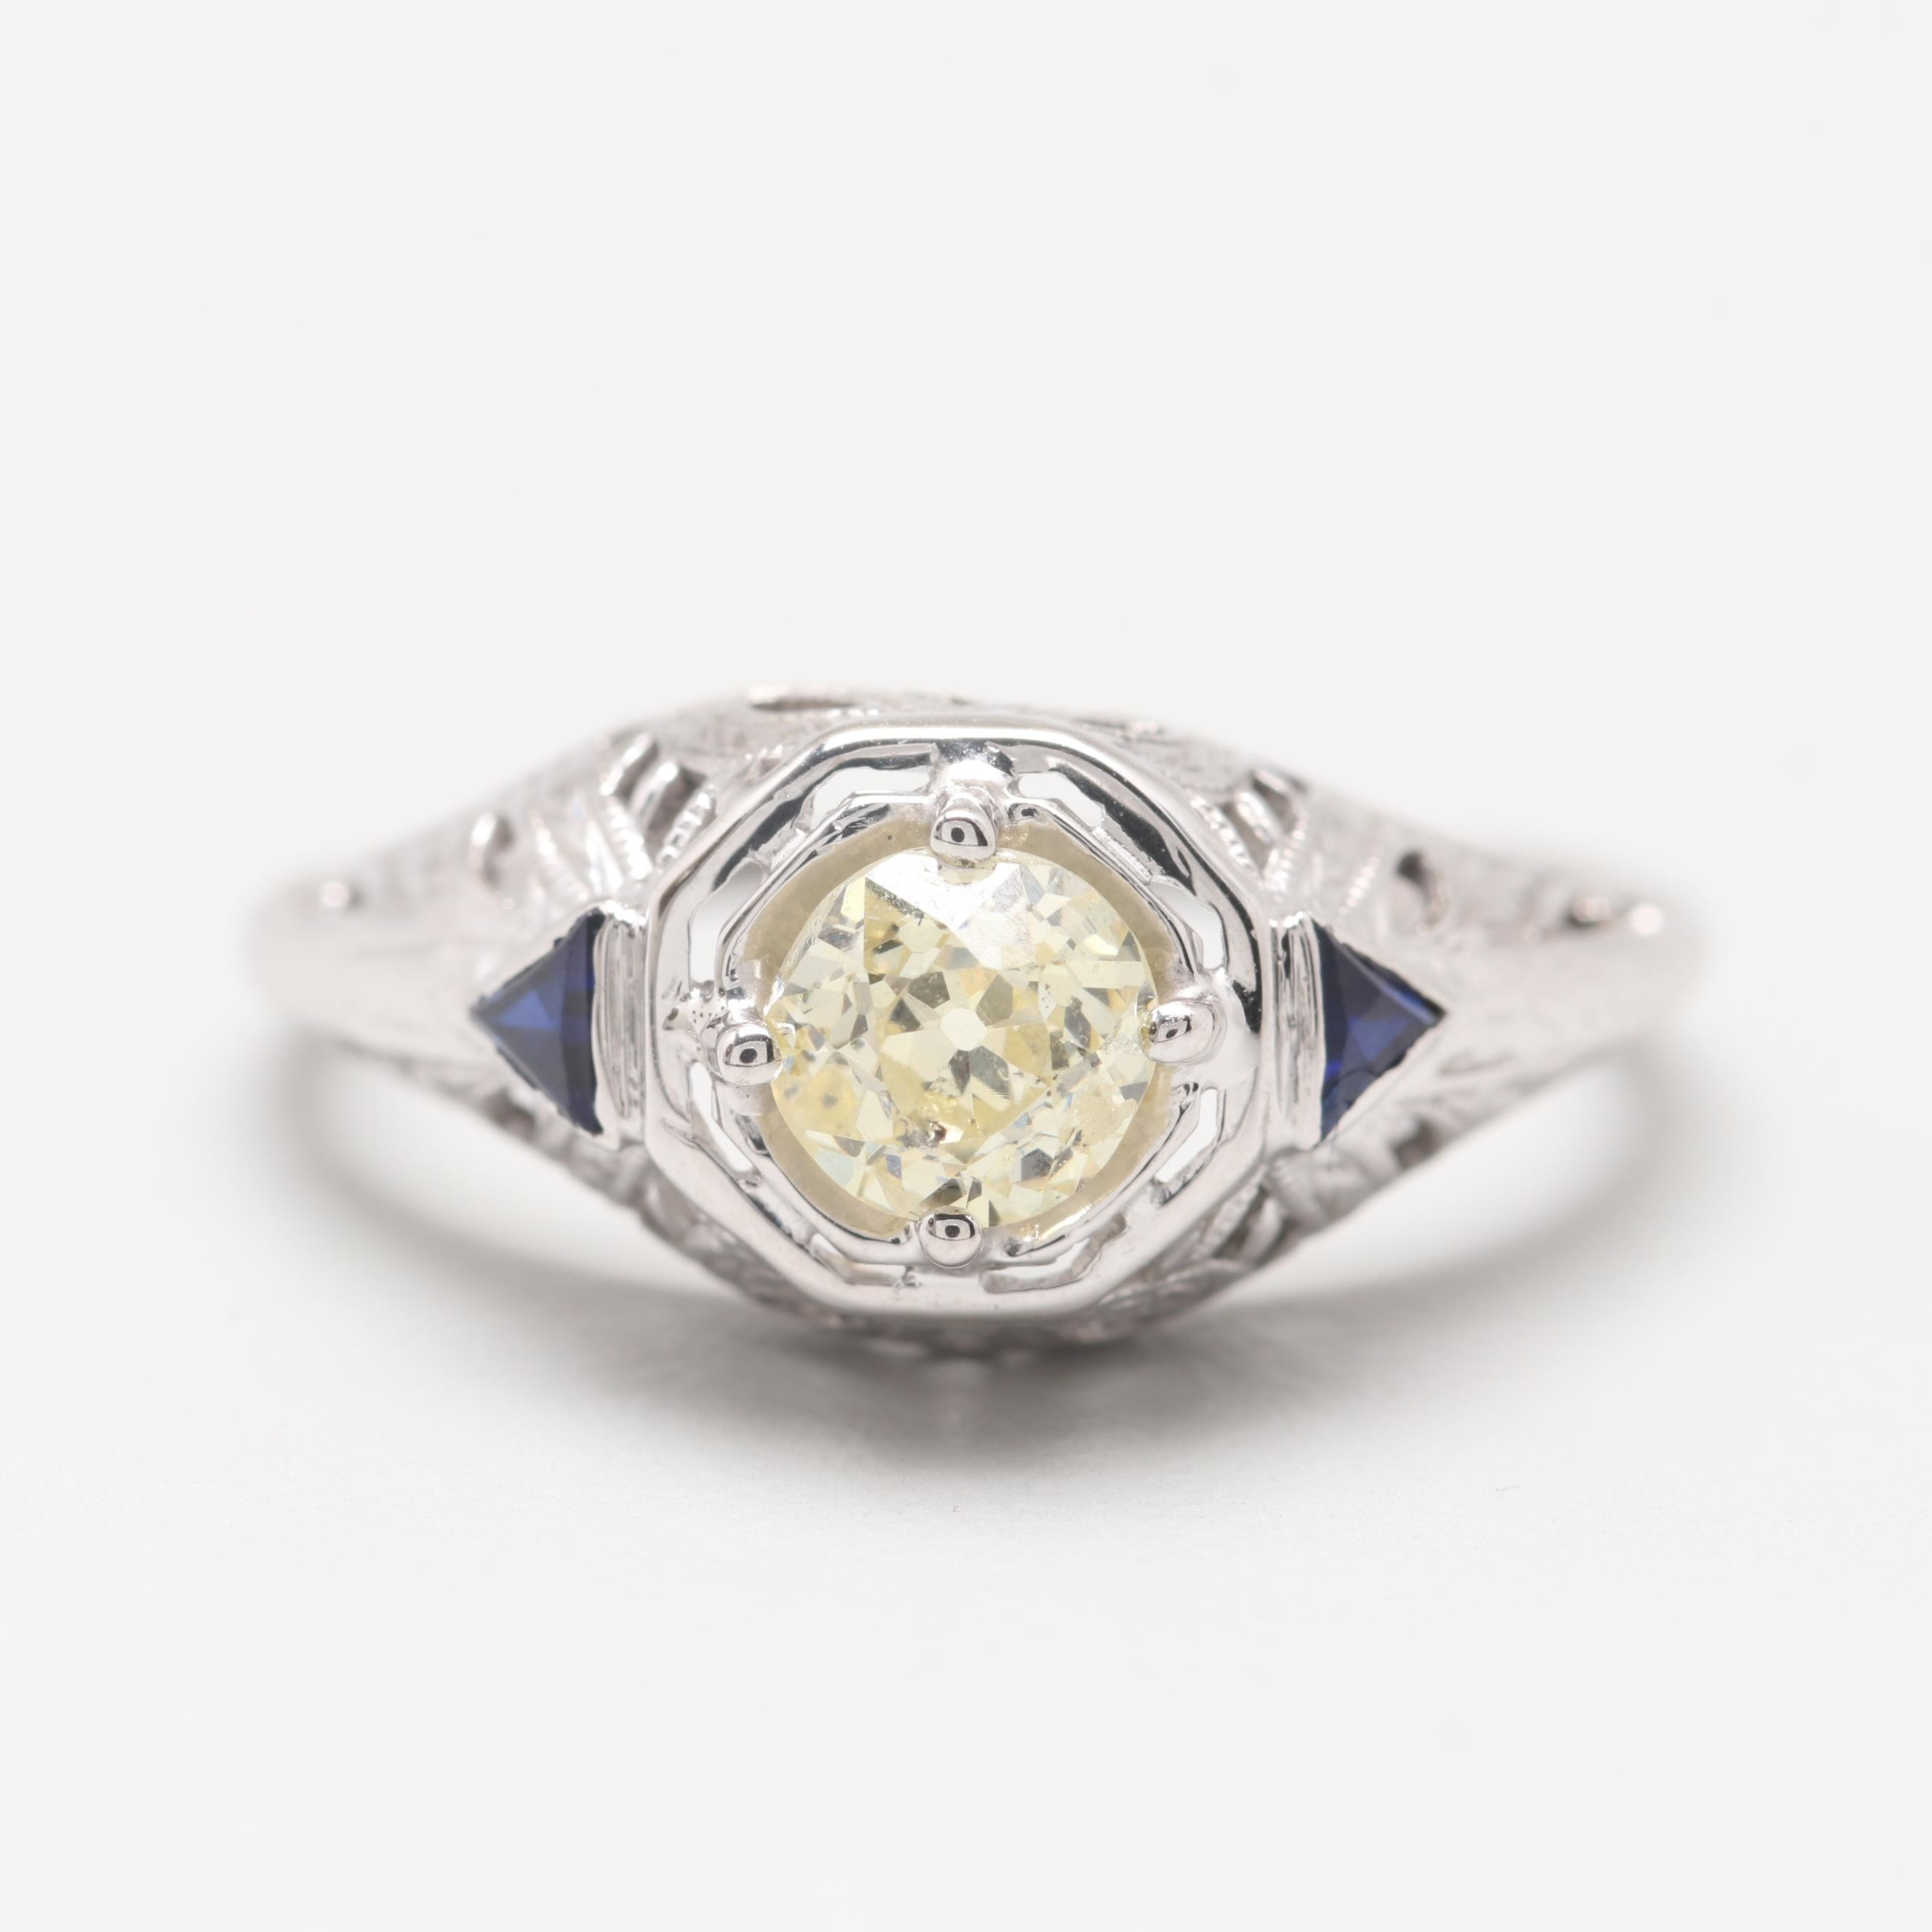 Circa 1920s 18K White Gold Diamond and Synthetic Blue Sapphire Ring